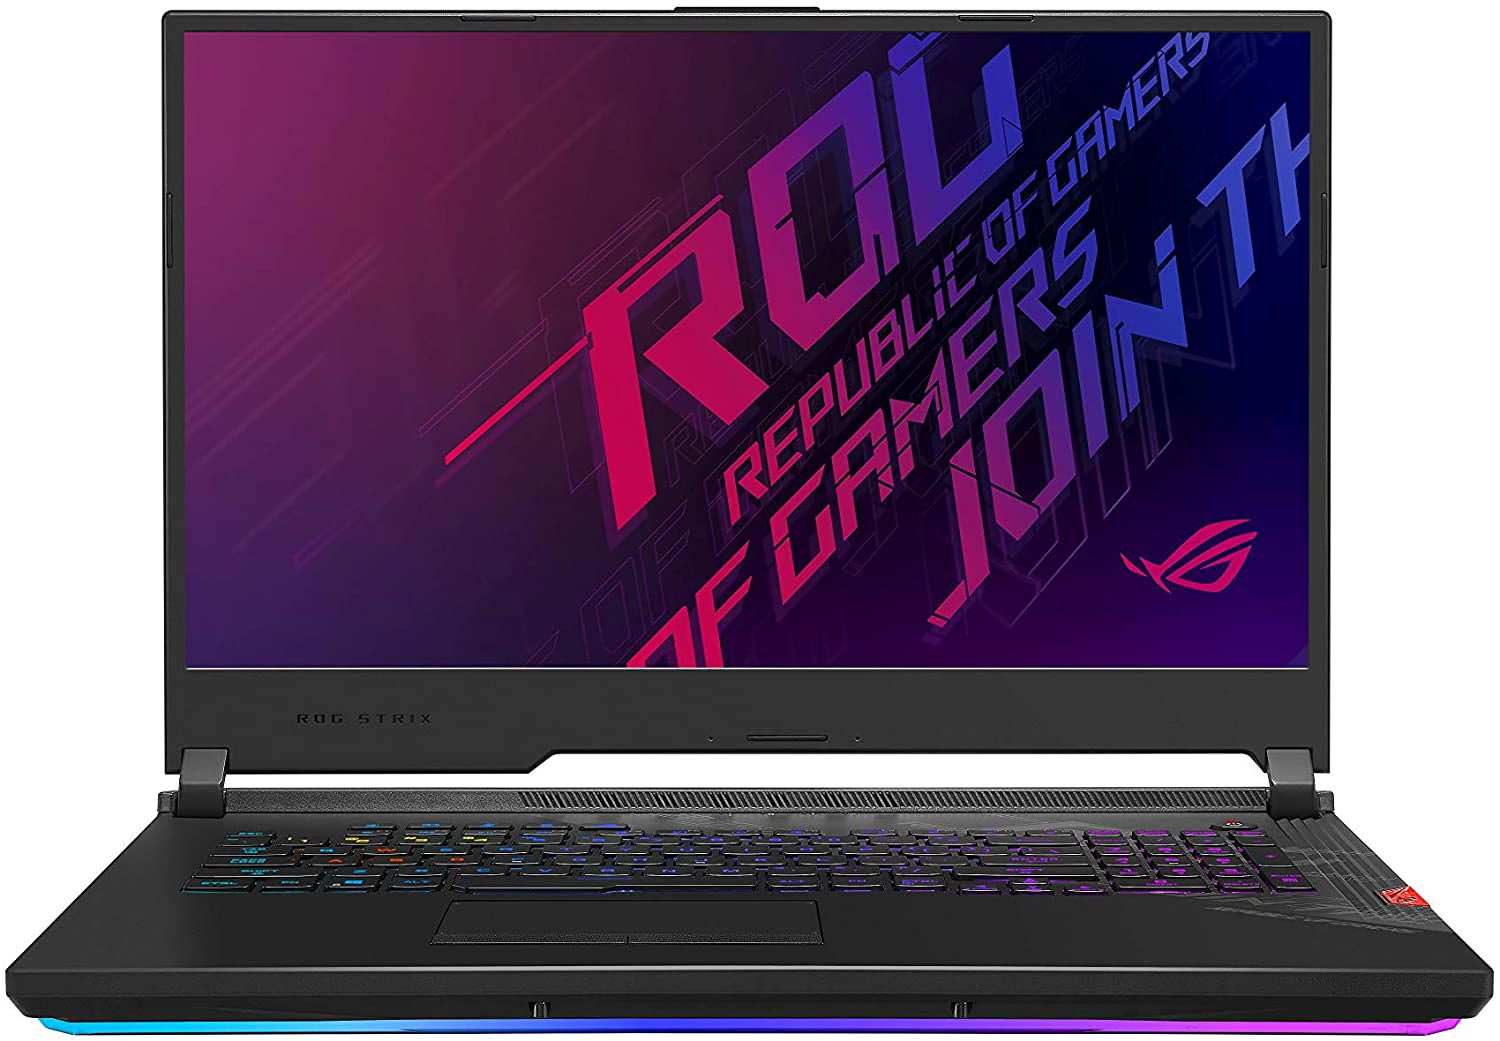 Asus Rog Strix Scar 17 best gaming laptop in 2020 with 17.3